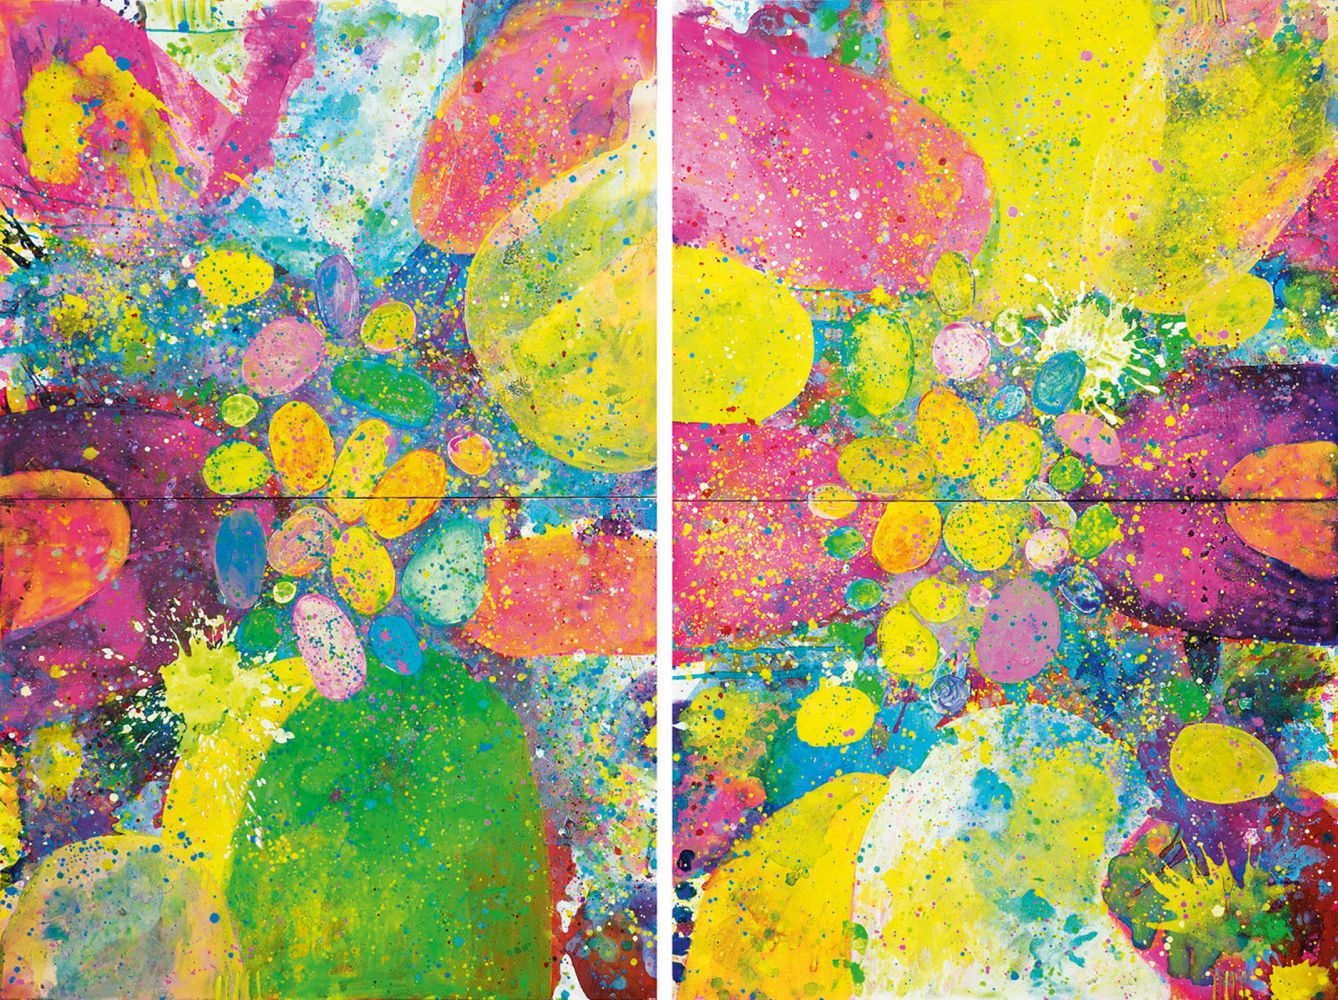 J. Steven Manolis, Orbs 2016, Diptych, 72 x 96 inches, Acrylic on canvas, For sale at Manolis Projects Art Gallery, Miami Fl